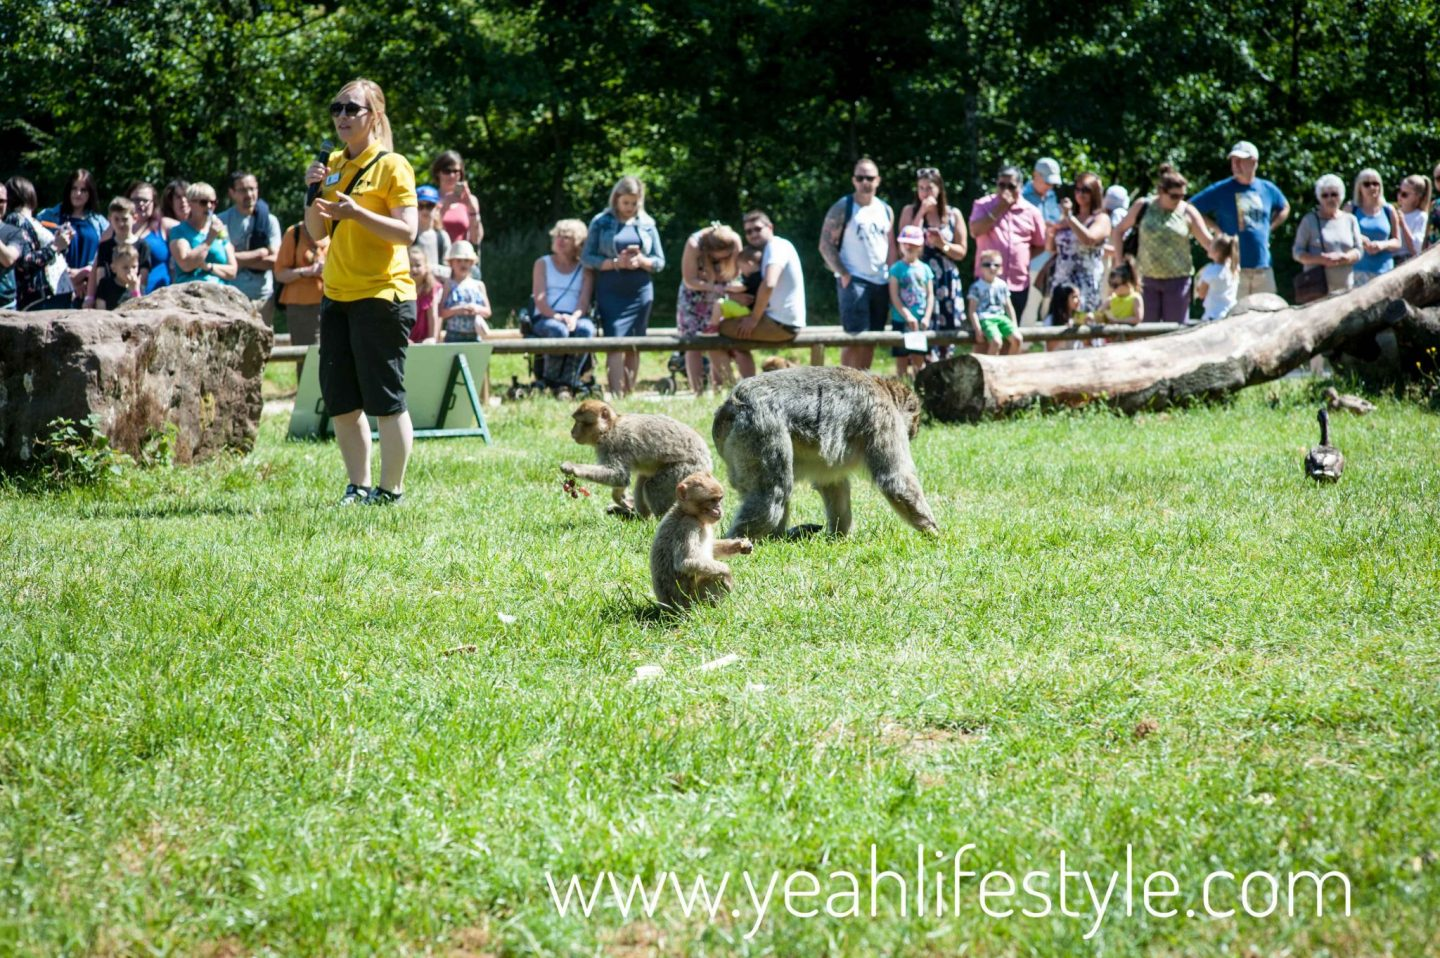 trentham-monkey-forest-travel-blogger-review-Barbary-macaque-feeding